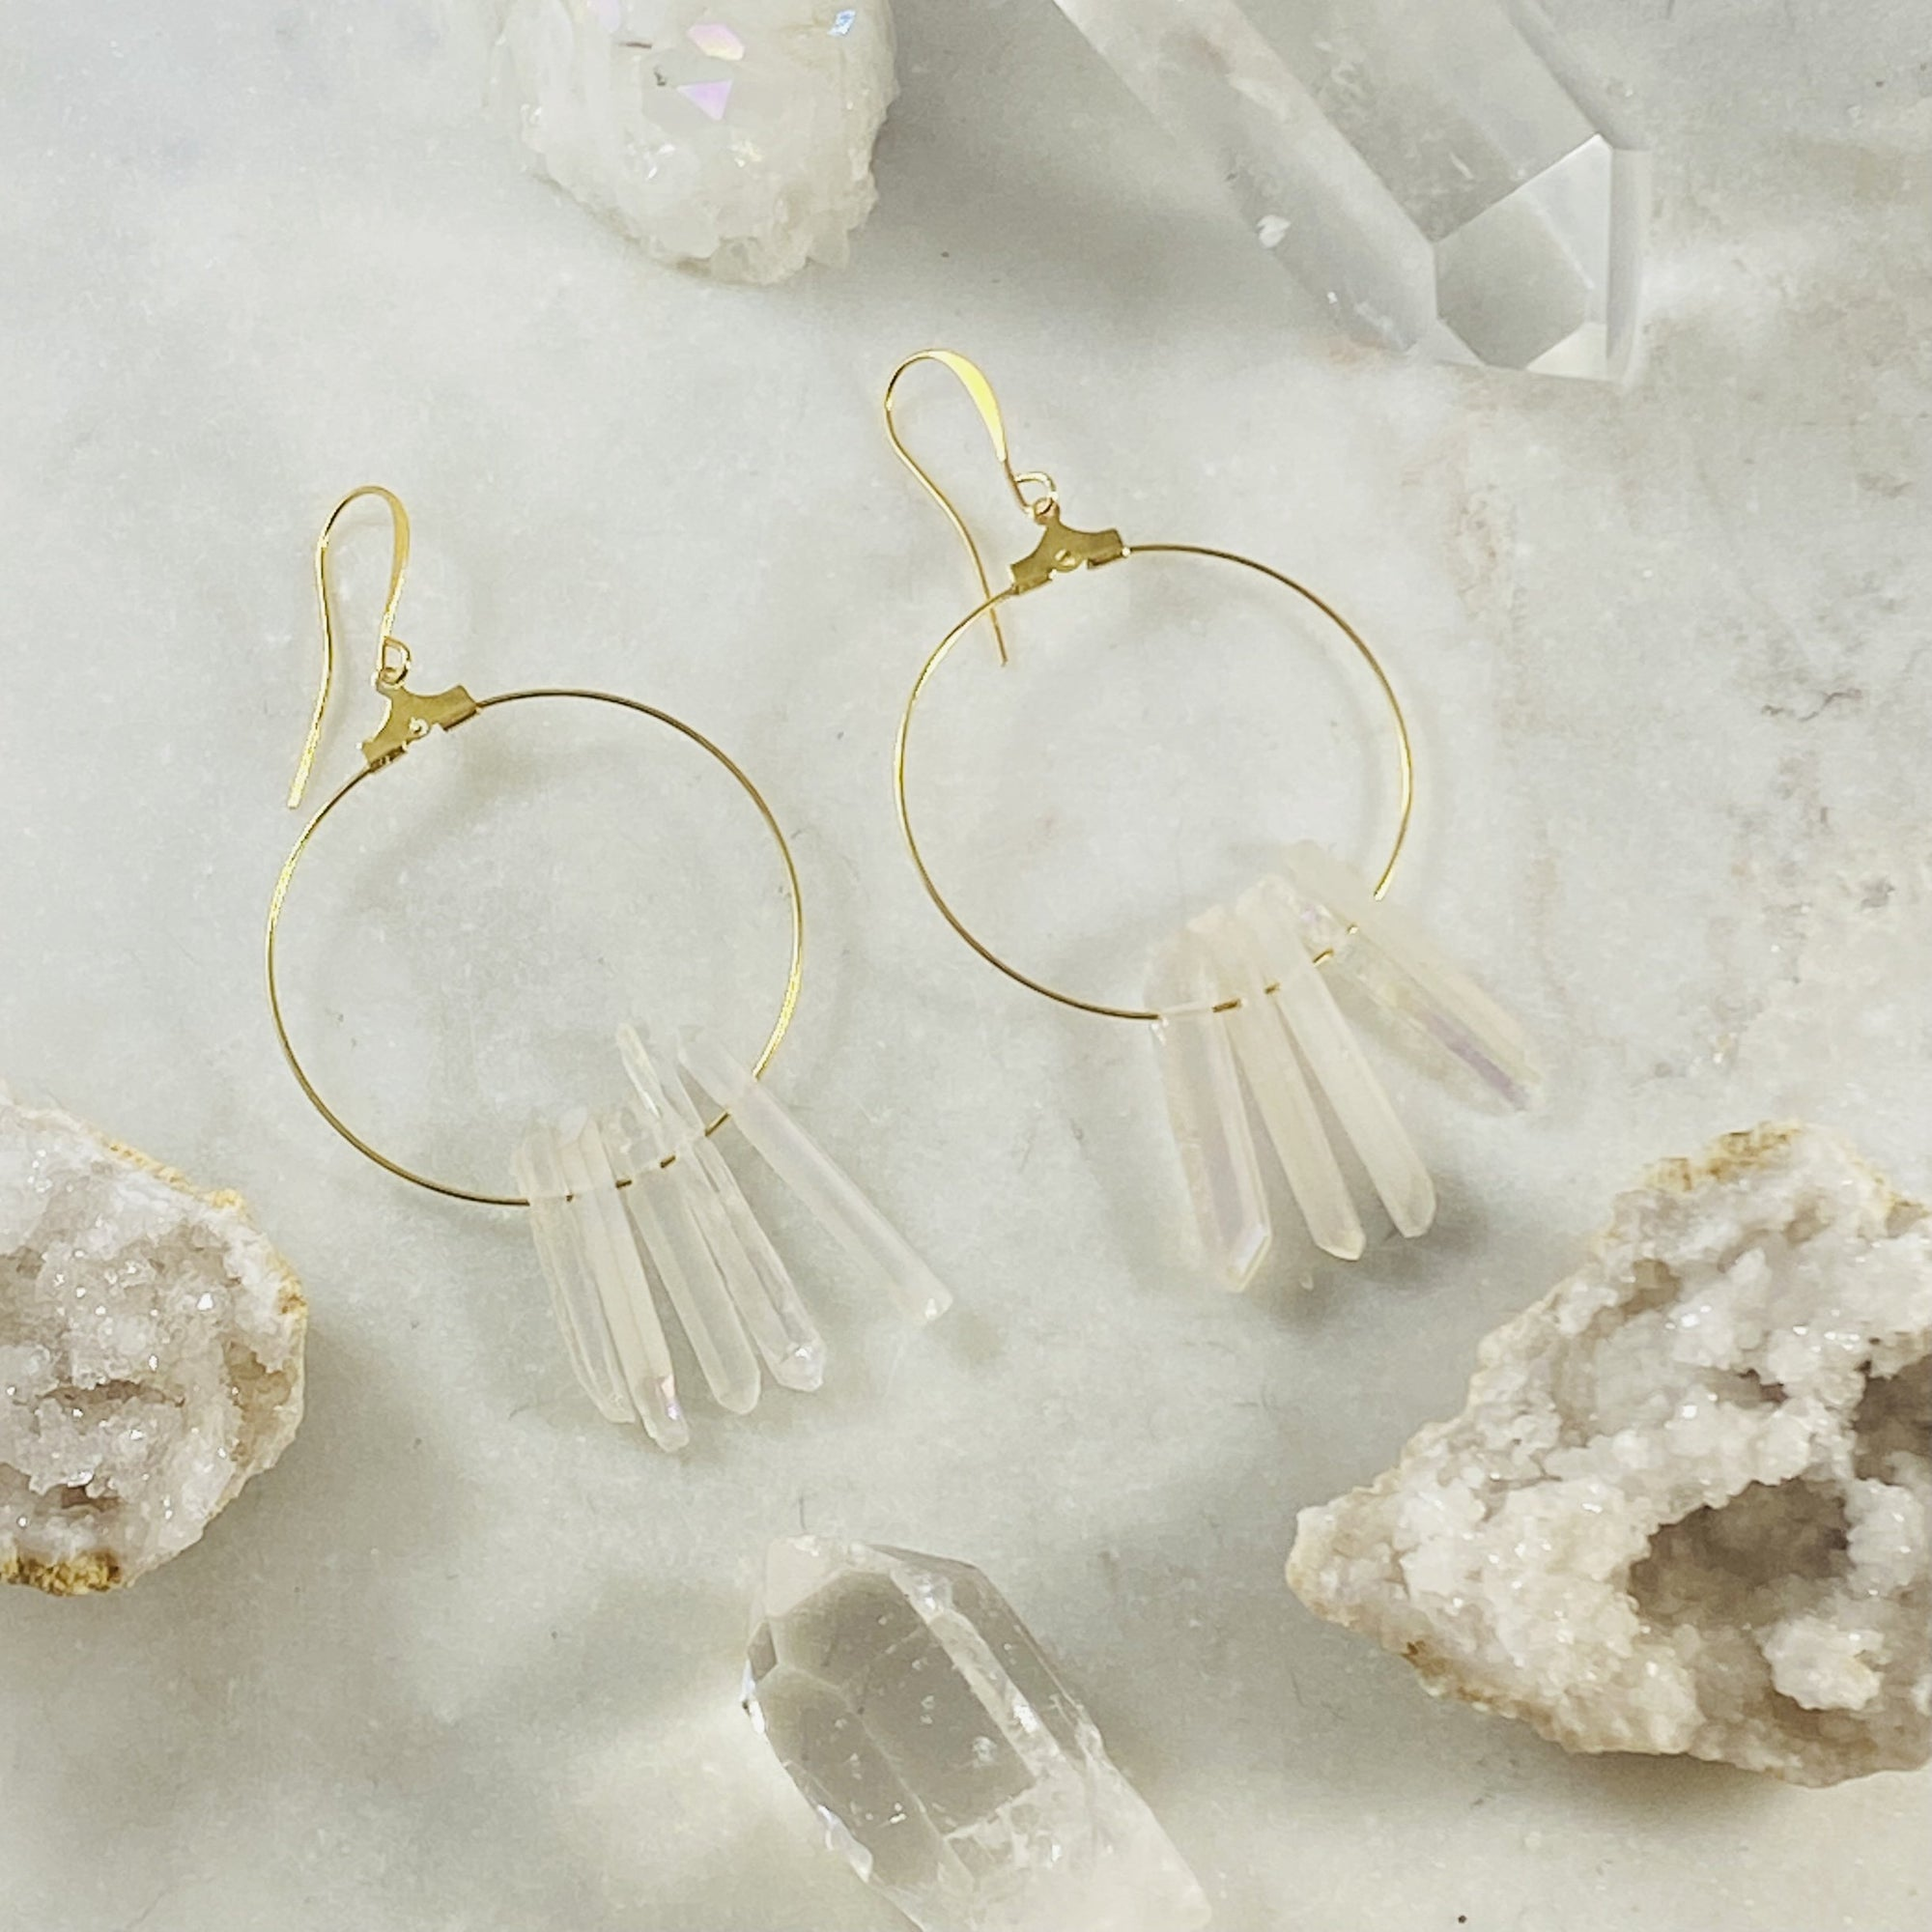 Stargazer Hoop Earrings